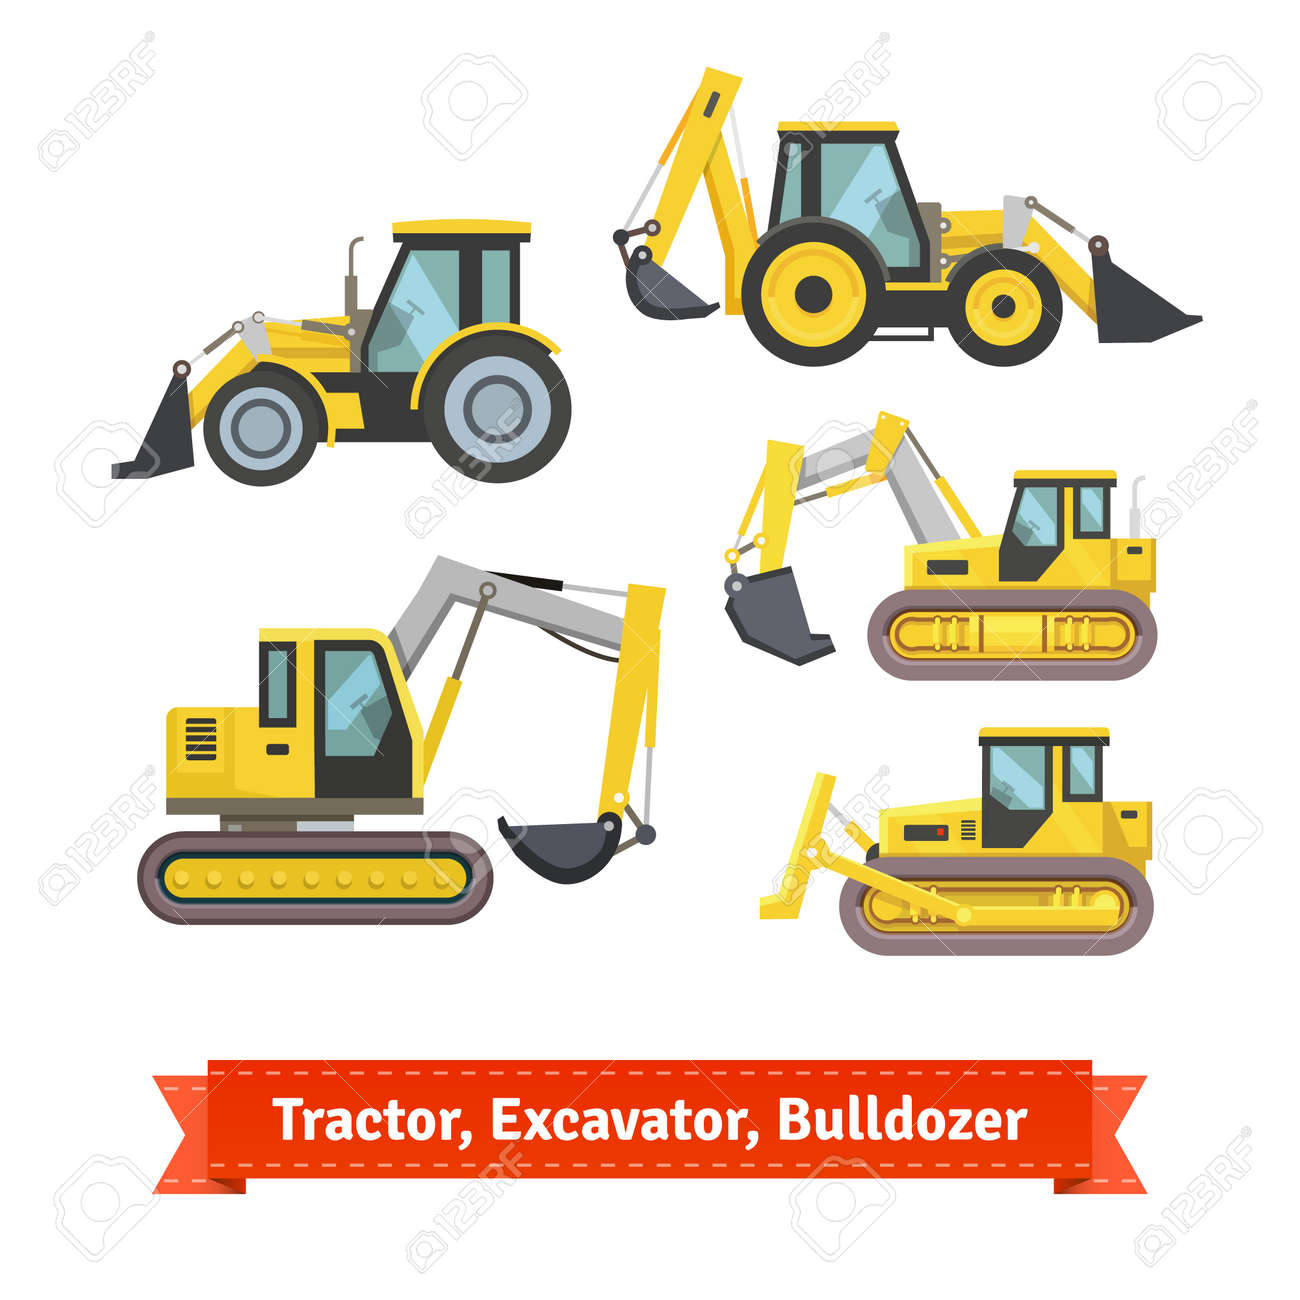 7,776 Bulldozer Stock Vector Illustration And Royalty Free ...